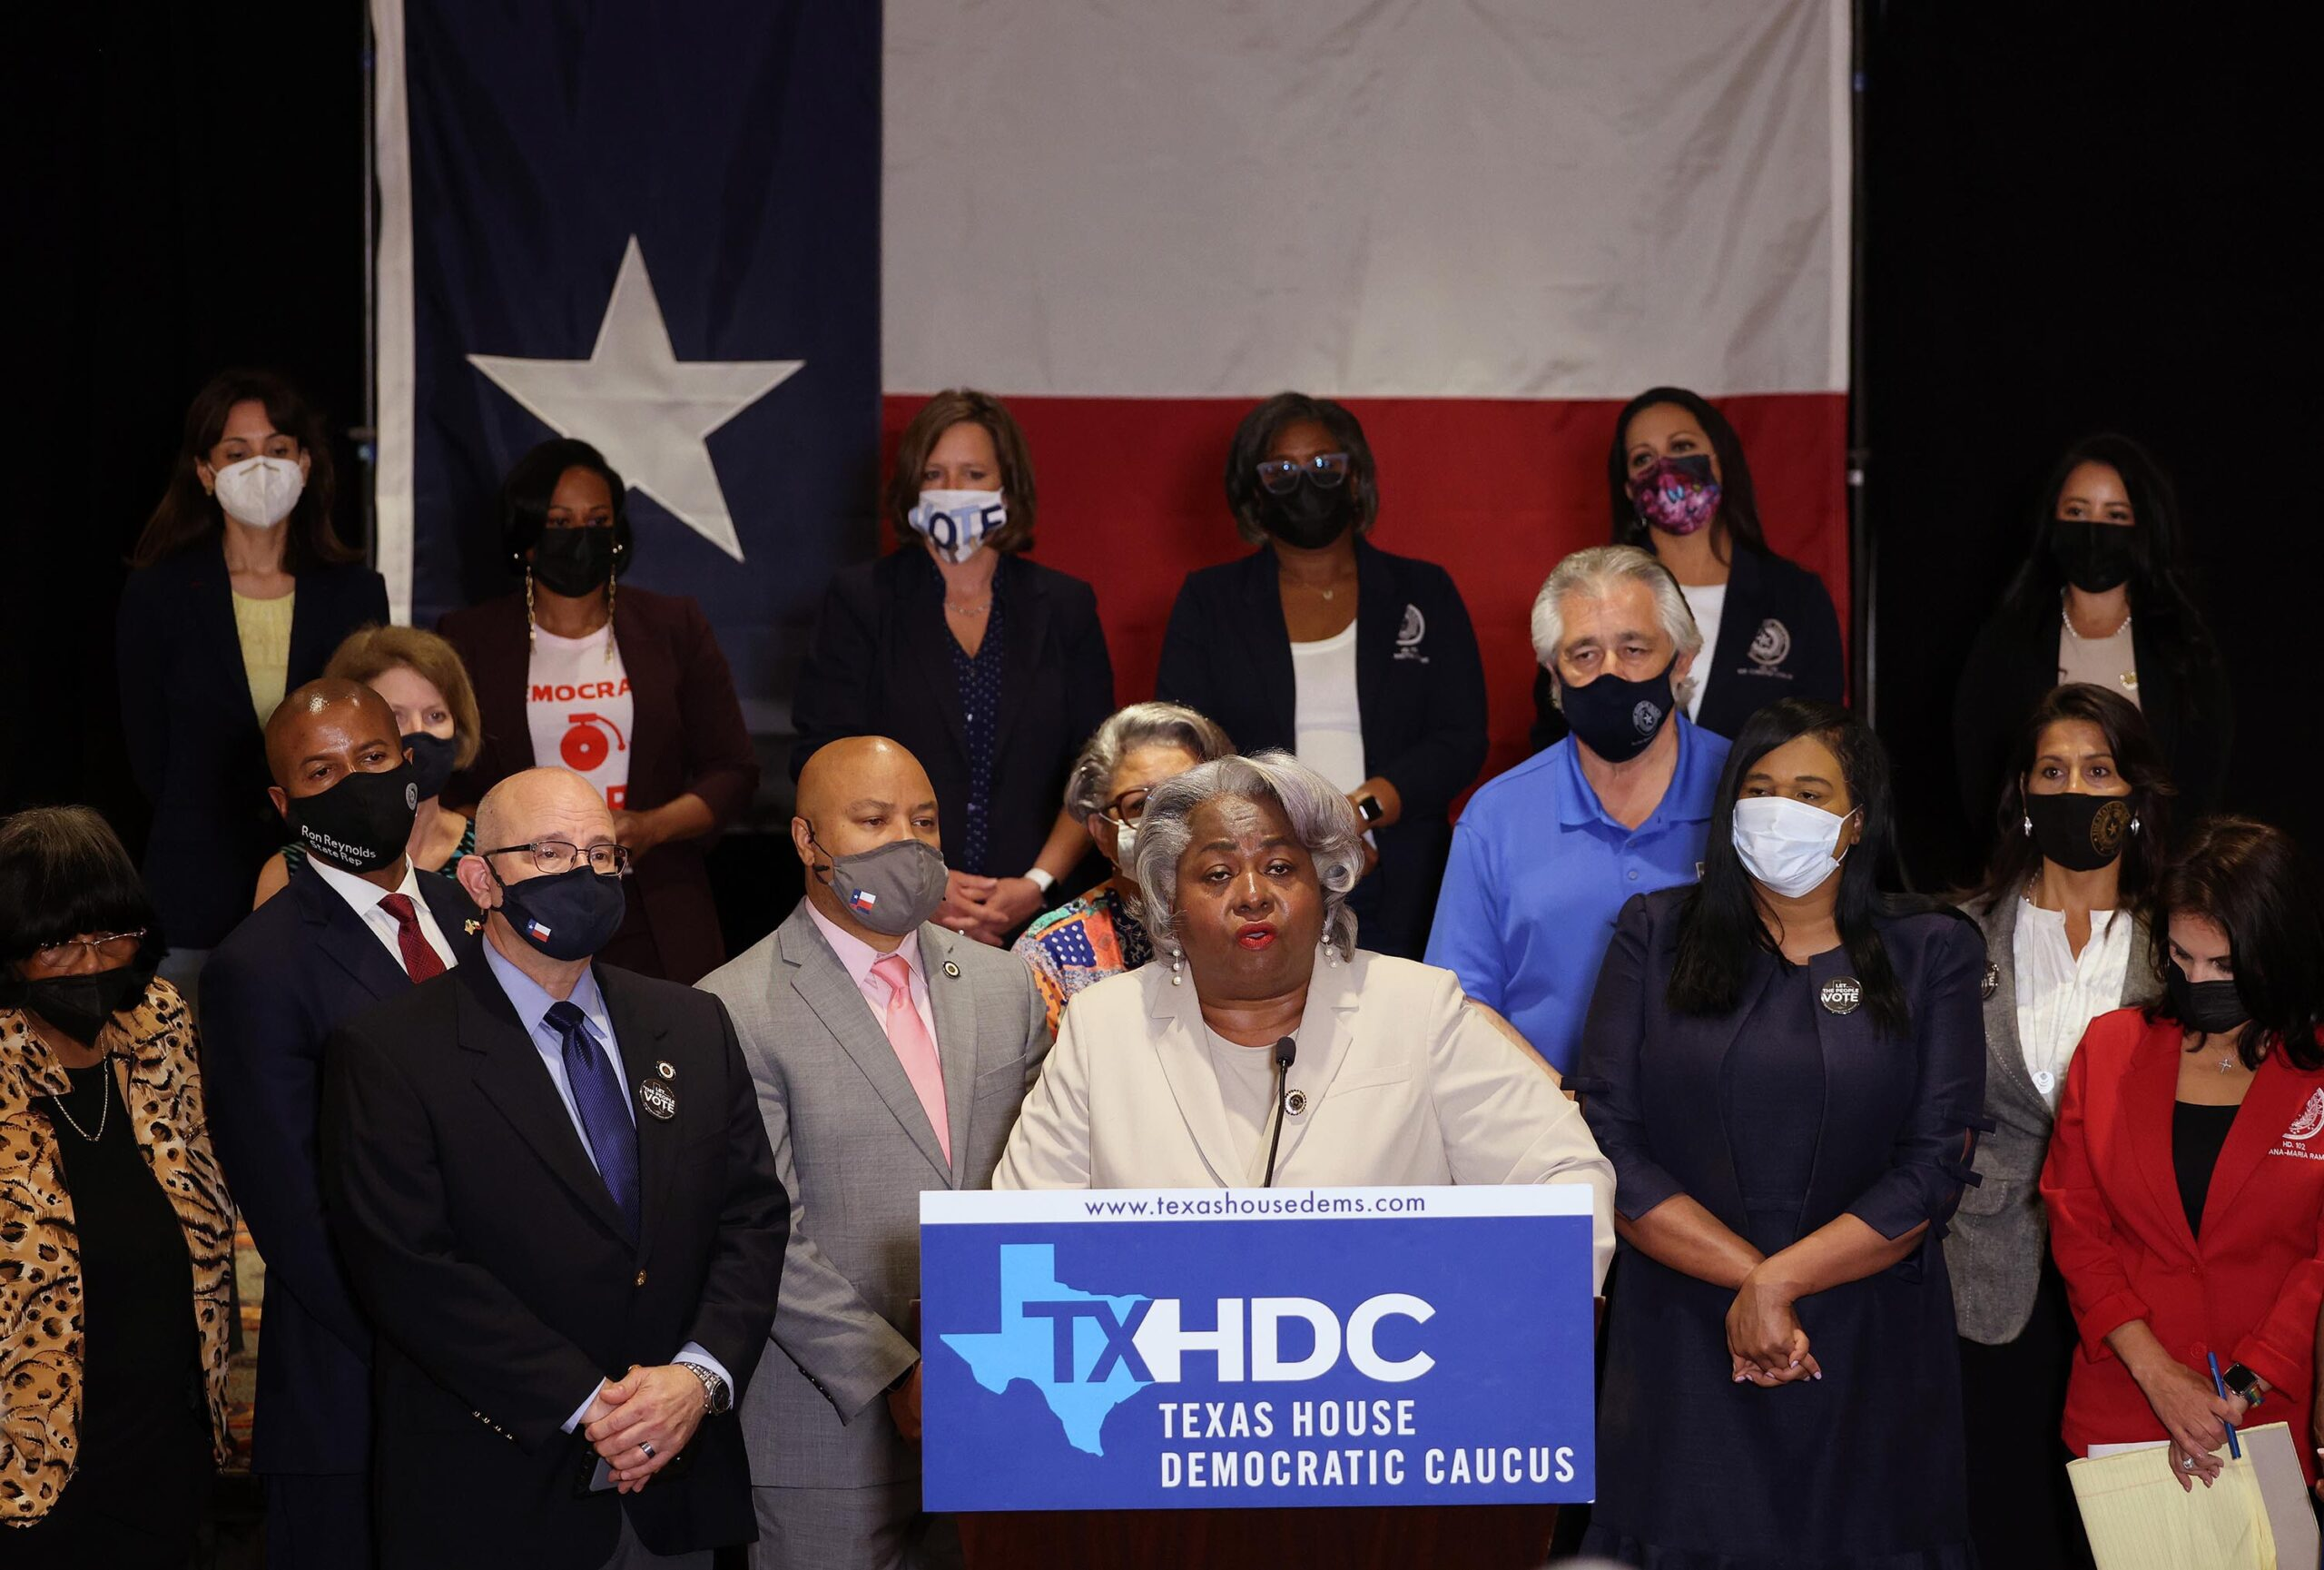 <i>Kevin Dietsch/Getty Images</i><br/>Texas House Democrats at a news conference.